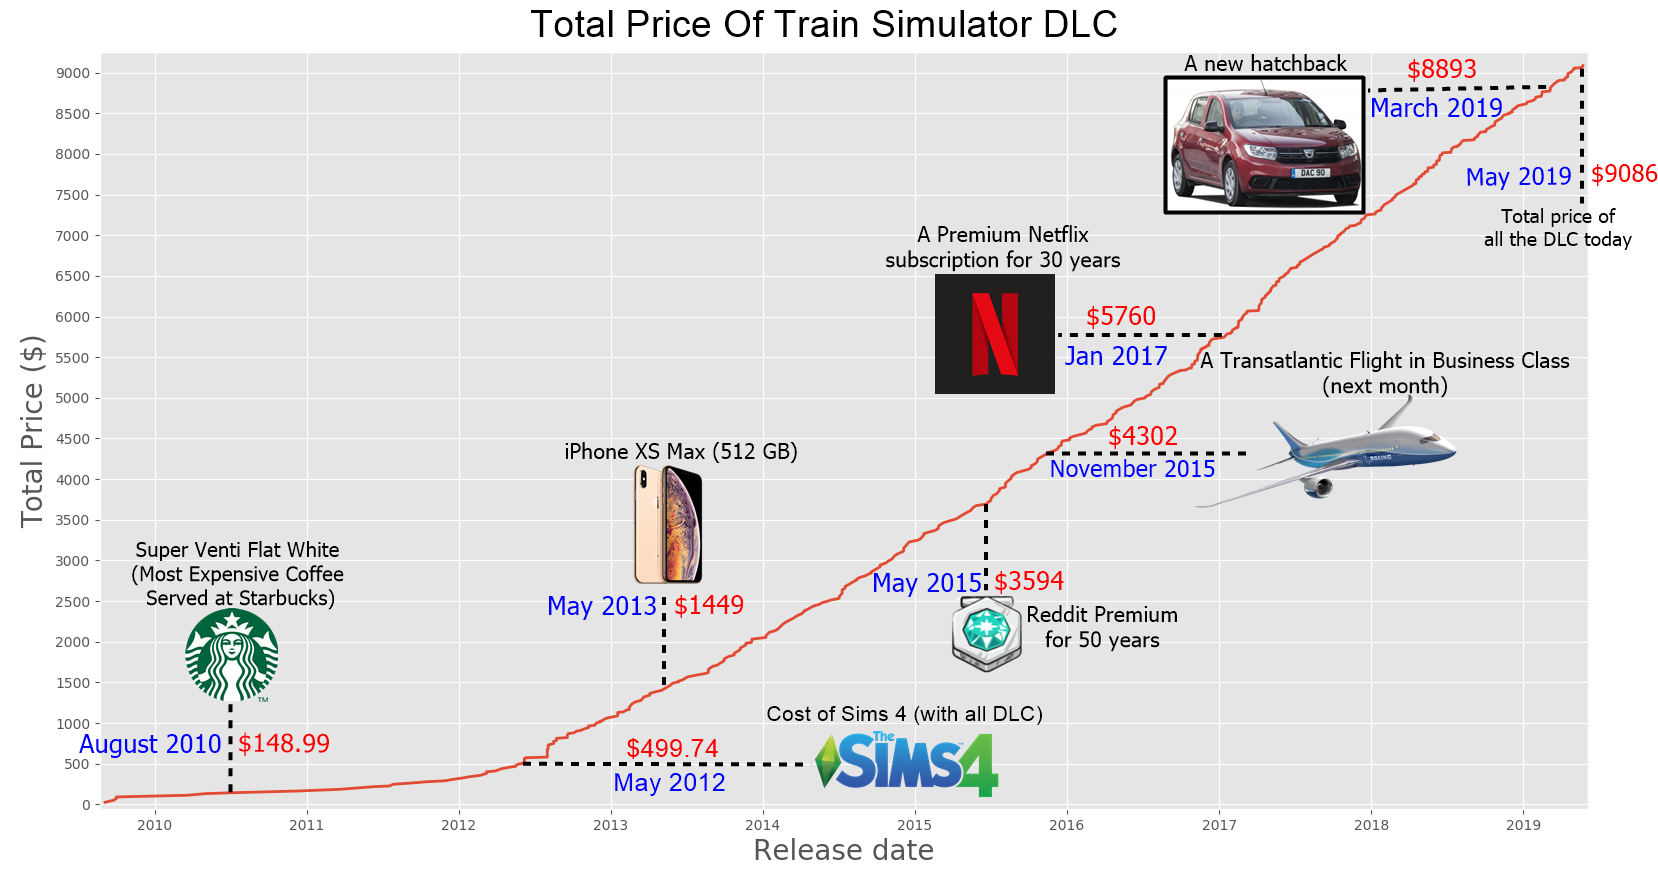 Total Price of Train Simulator DLC. The most expensive